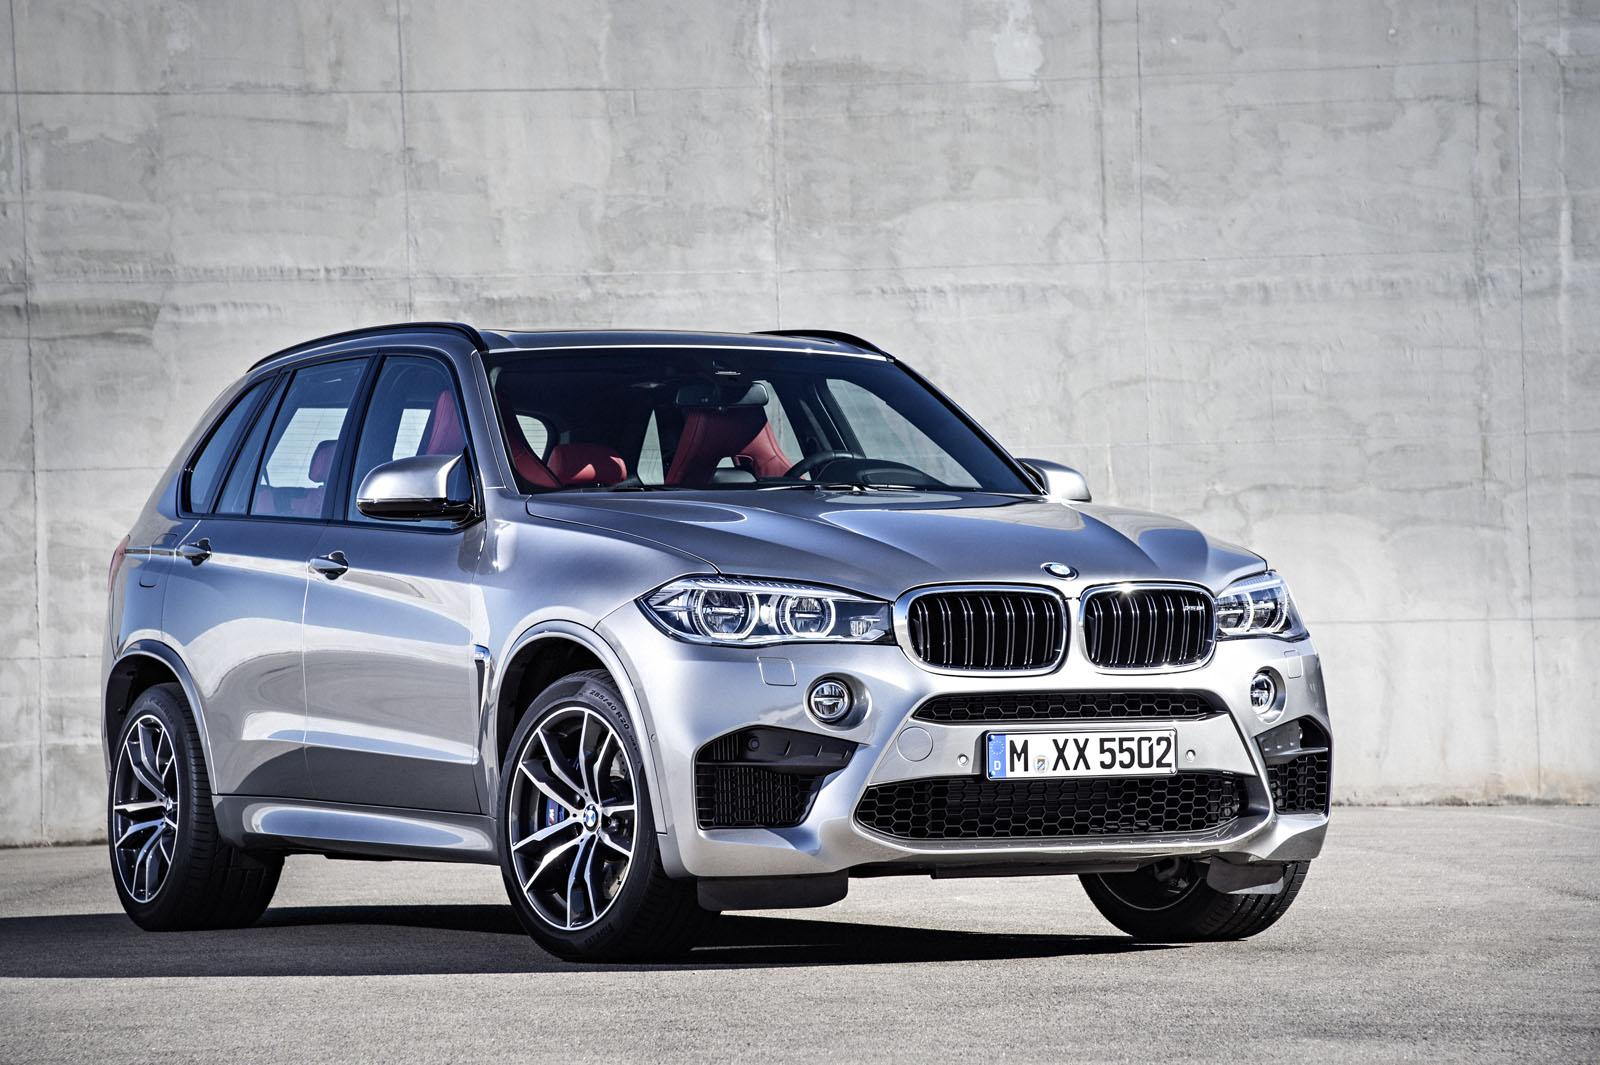 2015 Bmw X5 M Review Msrp Price